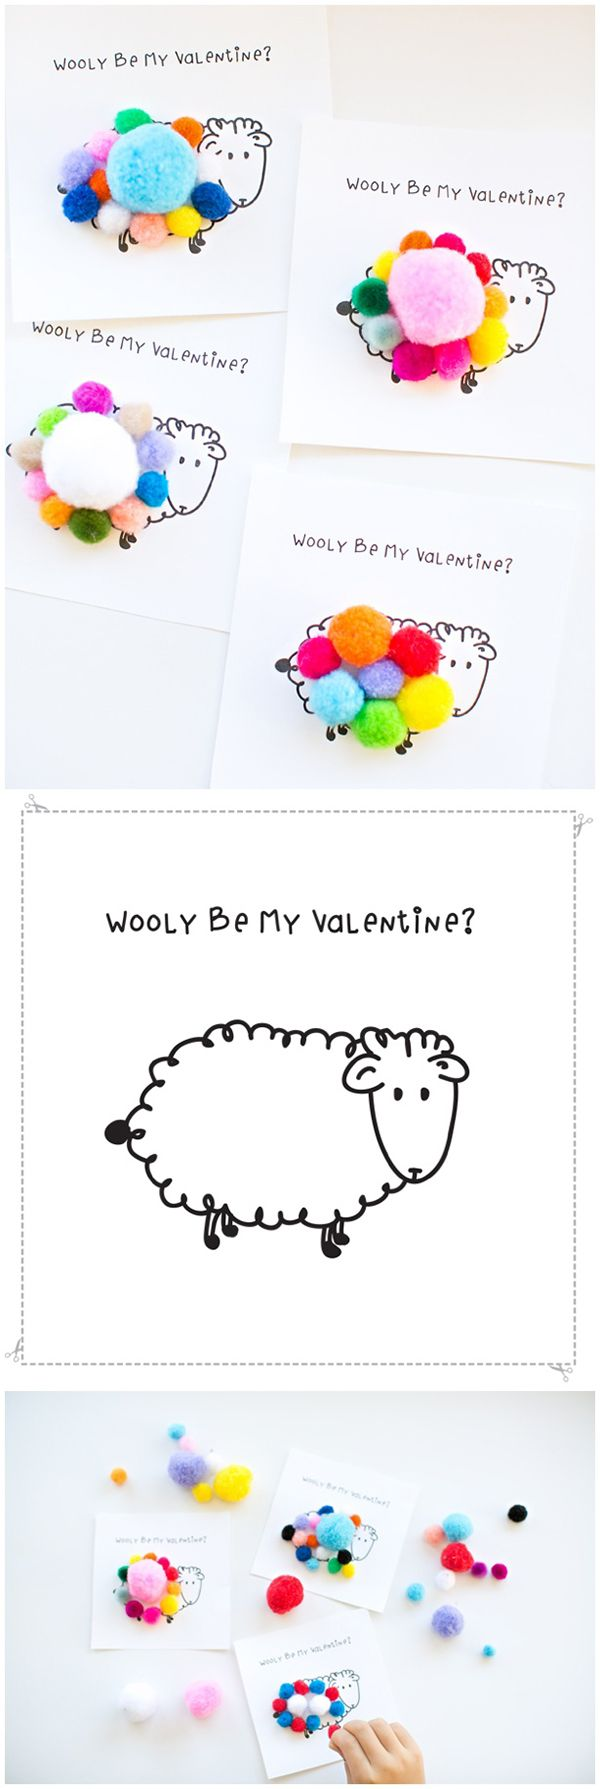 Wooly Be My Valentine Free Printable - print out these adorable sheep cards and let kids add pom poms on top for the sheeps wool. Such a cute, non-candy Valentine idea! - more at megacutie.co.uk